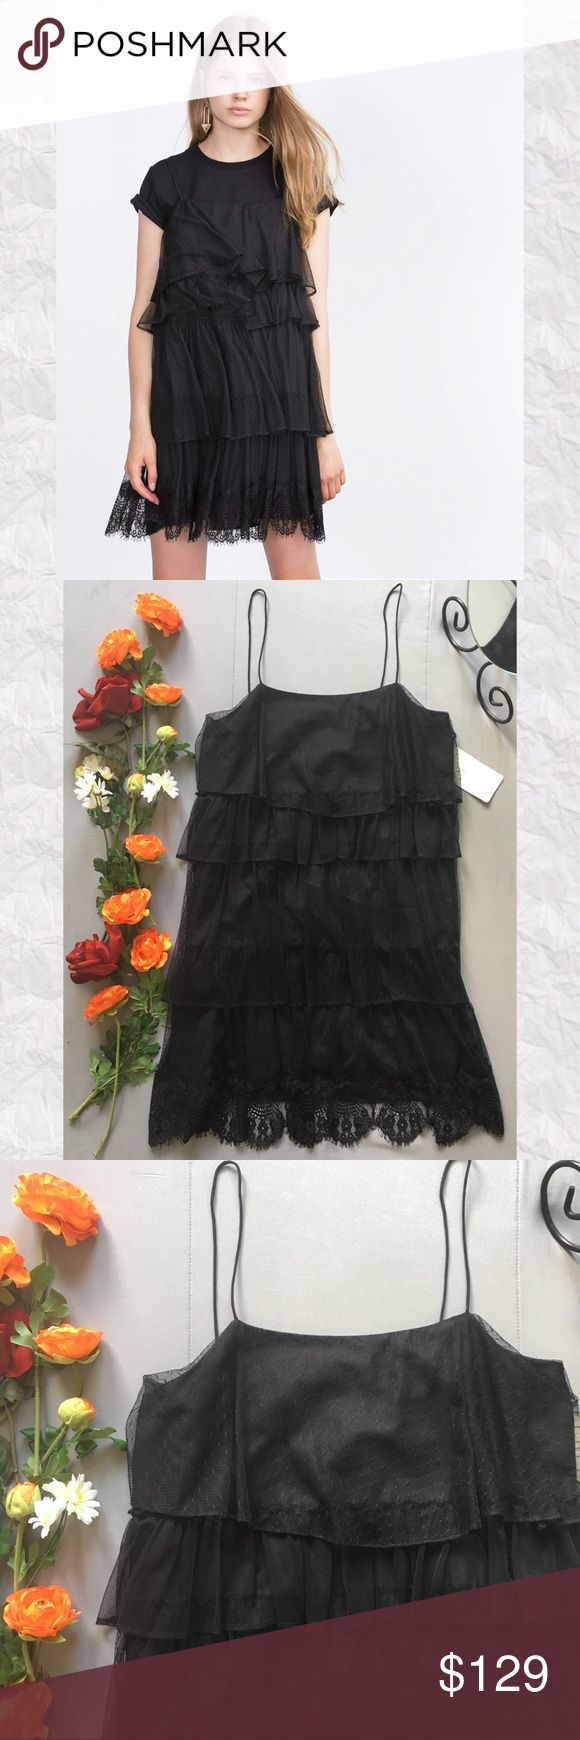 """Zara Ruffled Tiered Lace Mini Dress *SALE IS FOR DRESS ONLY! *Brand new with tags. See photos 5. *Looks great layered or alone.  *100% Nylon *Machine washable  *Popover style *Relaxed silhouette *Scalloped eyelash trim hen  *There is an additional 1"""" of Strap that can be let out at buyer's discretion see photo 9 *Measurements are approx & taken lying flat *Bust 36"""" *Shoulder to hem 32.5"""" *Stored in non-smoking pet free home Zara Dresses Mini"""